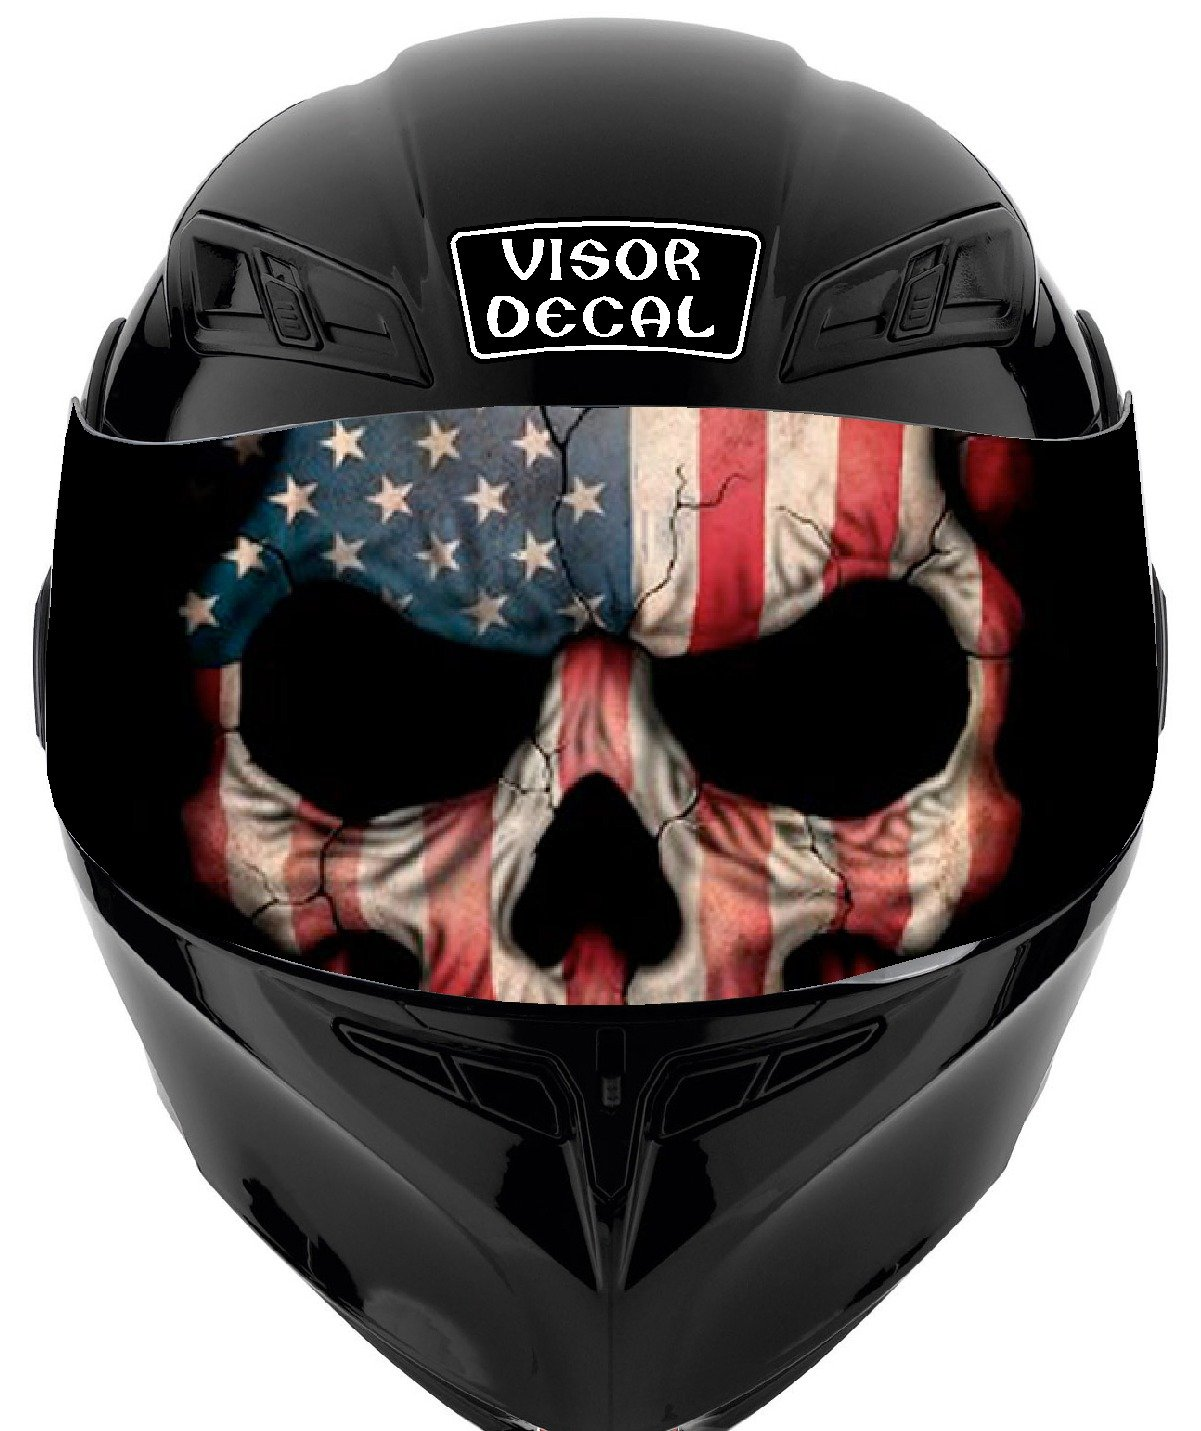 V33 American Flag Skull VISOR TINT DECAL Graphic Sticker Helmet Fits: Icon Shoei Bell HJC Oneal Scorpion AGV Sign Factory